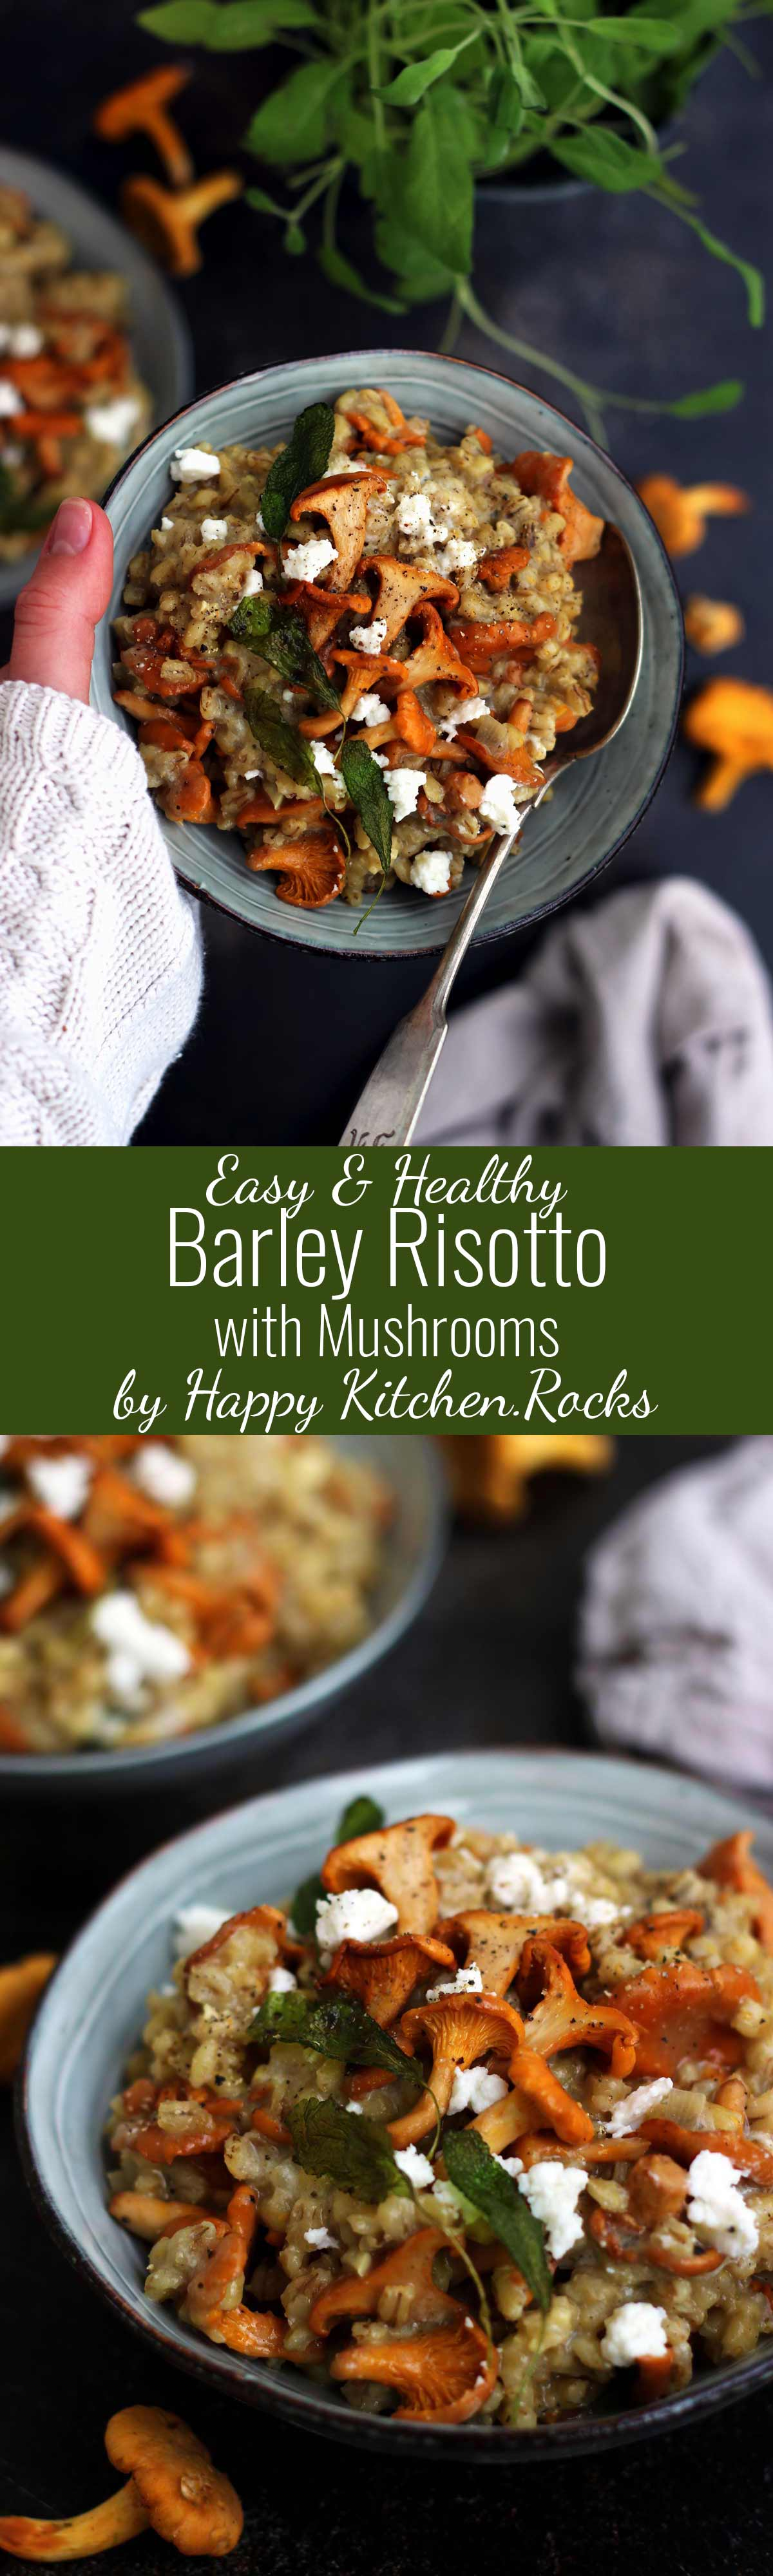 Easy Barley Risotto with Mushroom and Goat Cheese Super Long Collage with Two Images and Text Overlay